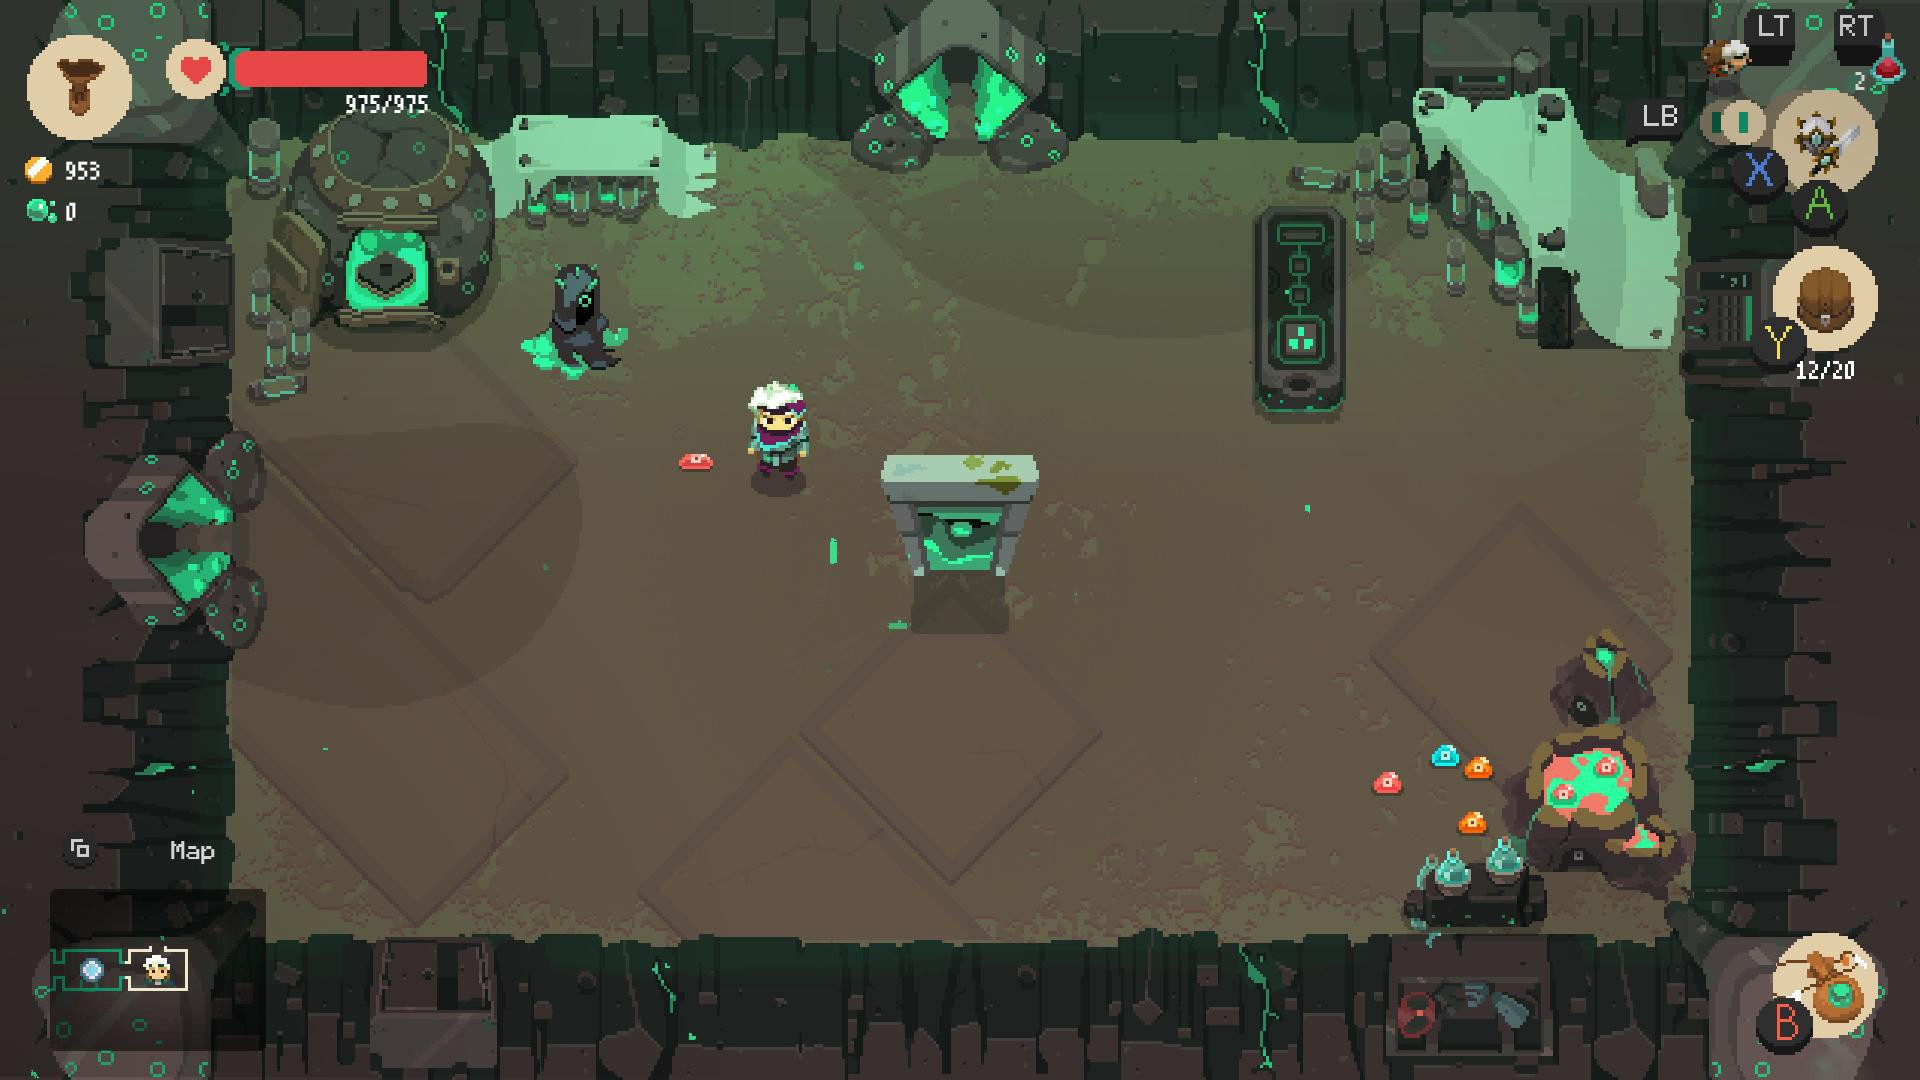 11 bit studios, 2D, Action, adventure, Digital Sun, dungeon crawler, Fantasy, Hack and Slash, indie, Moonlighter, Moonlighter Between Dimensions, Moonlighter Between Dimensions Review, Moonlighter Review, Nintendo Switch Review, Pixel Graphics, Procedurally Generated, Rating 7/10, Rogue-lite, RPG, Switch Review